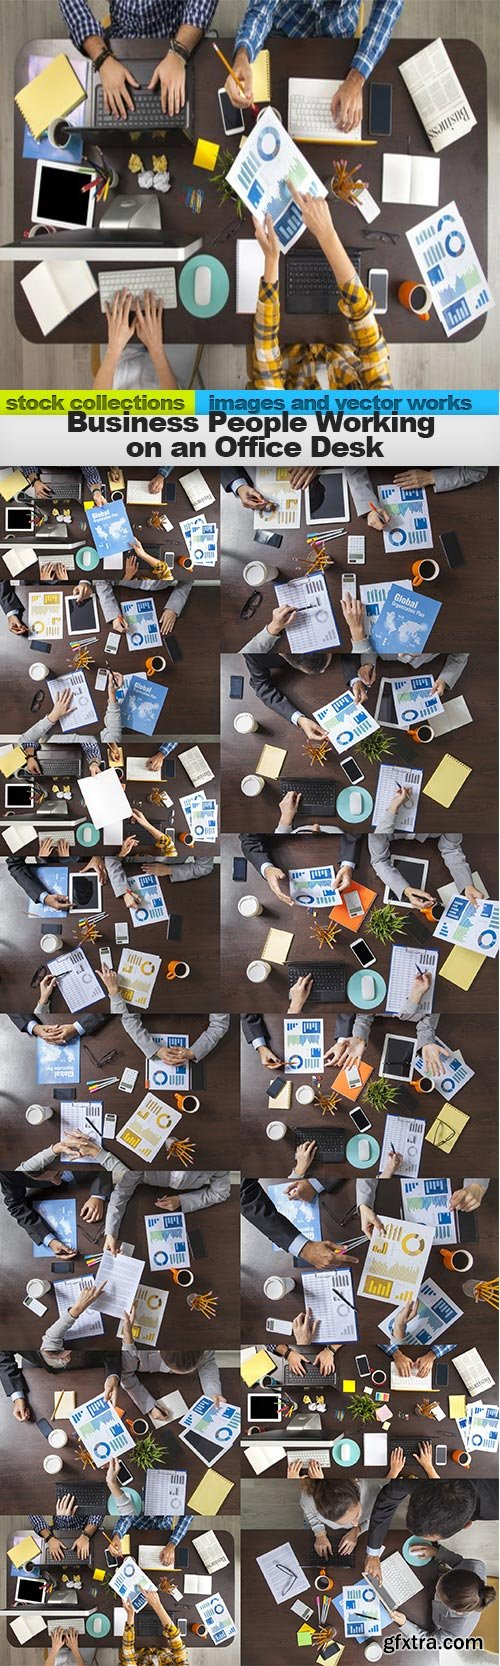 Business People Working on an Office Desk, 15 x UHQ JPEG